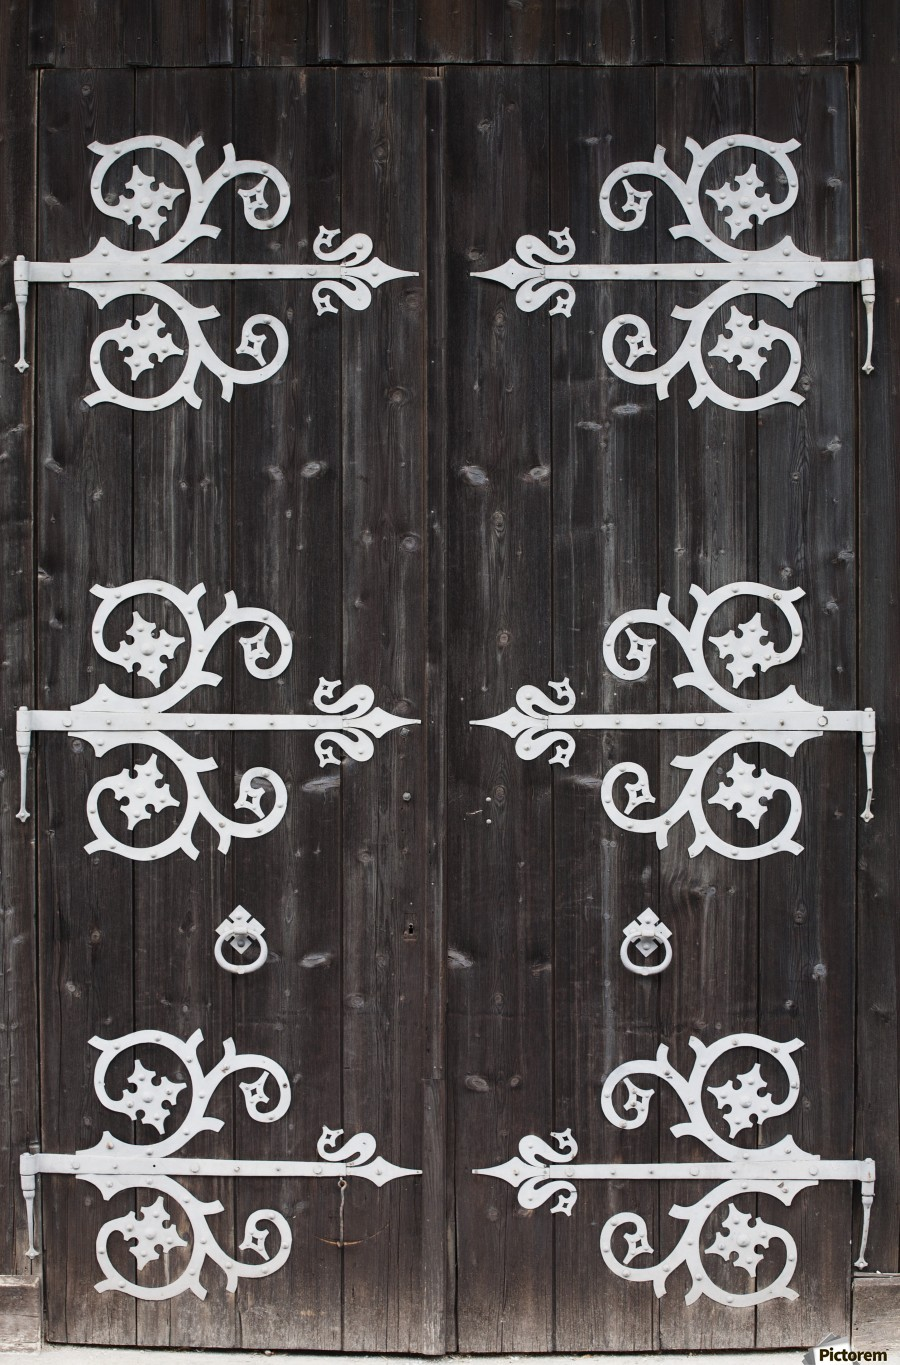 Large Metal Decorative Hinges On A Weathered Wooden Barn Door Fussen Germany Pacificstock